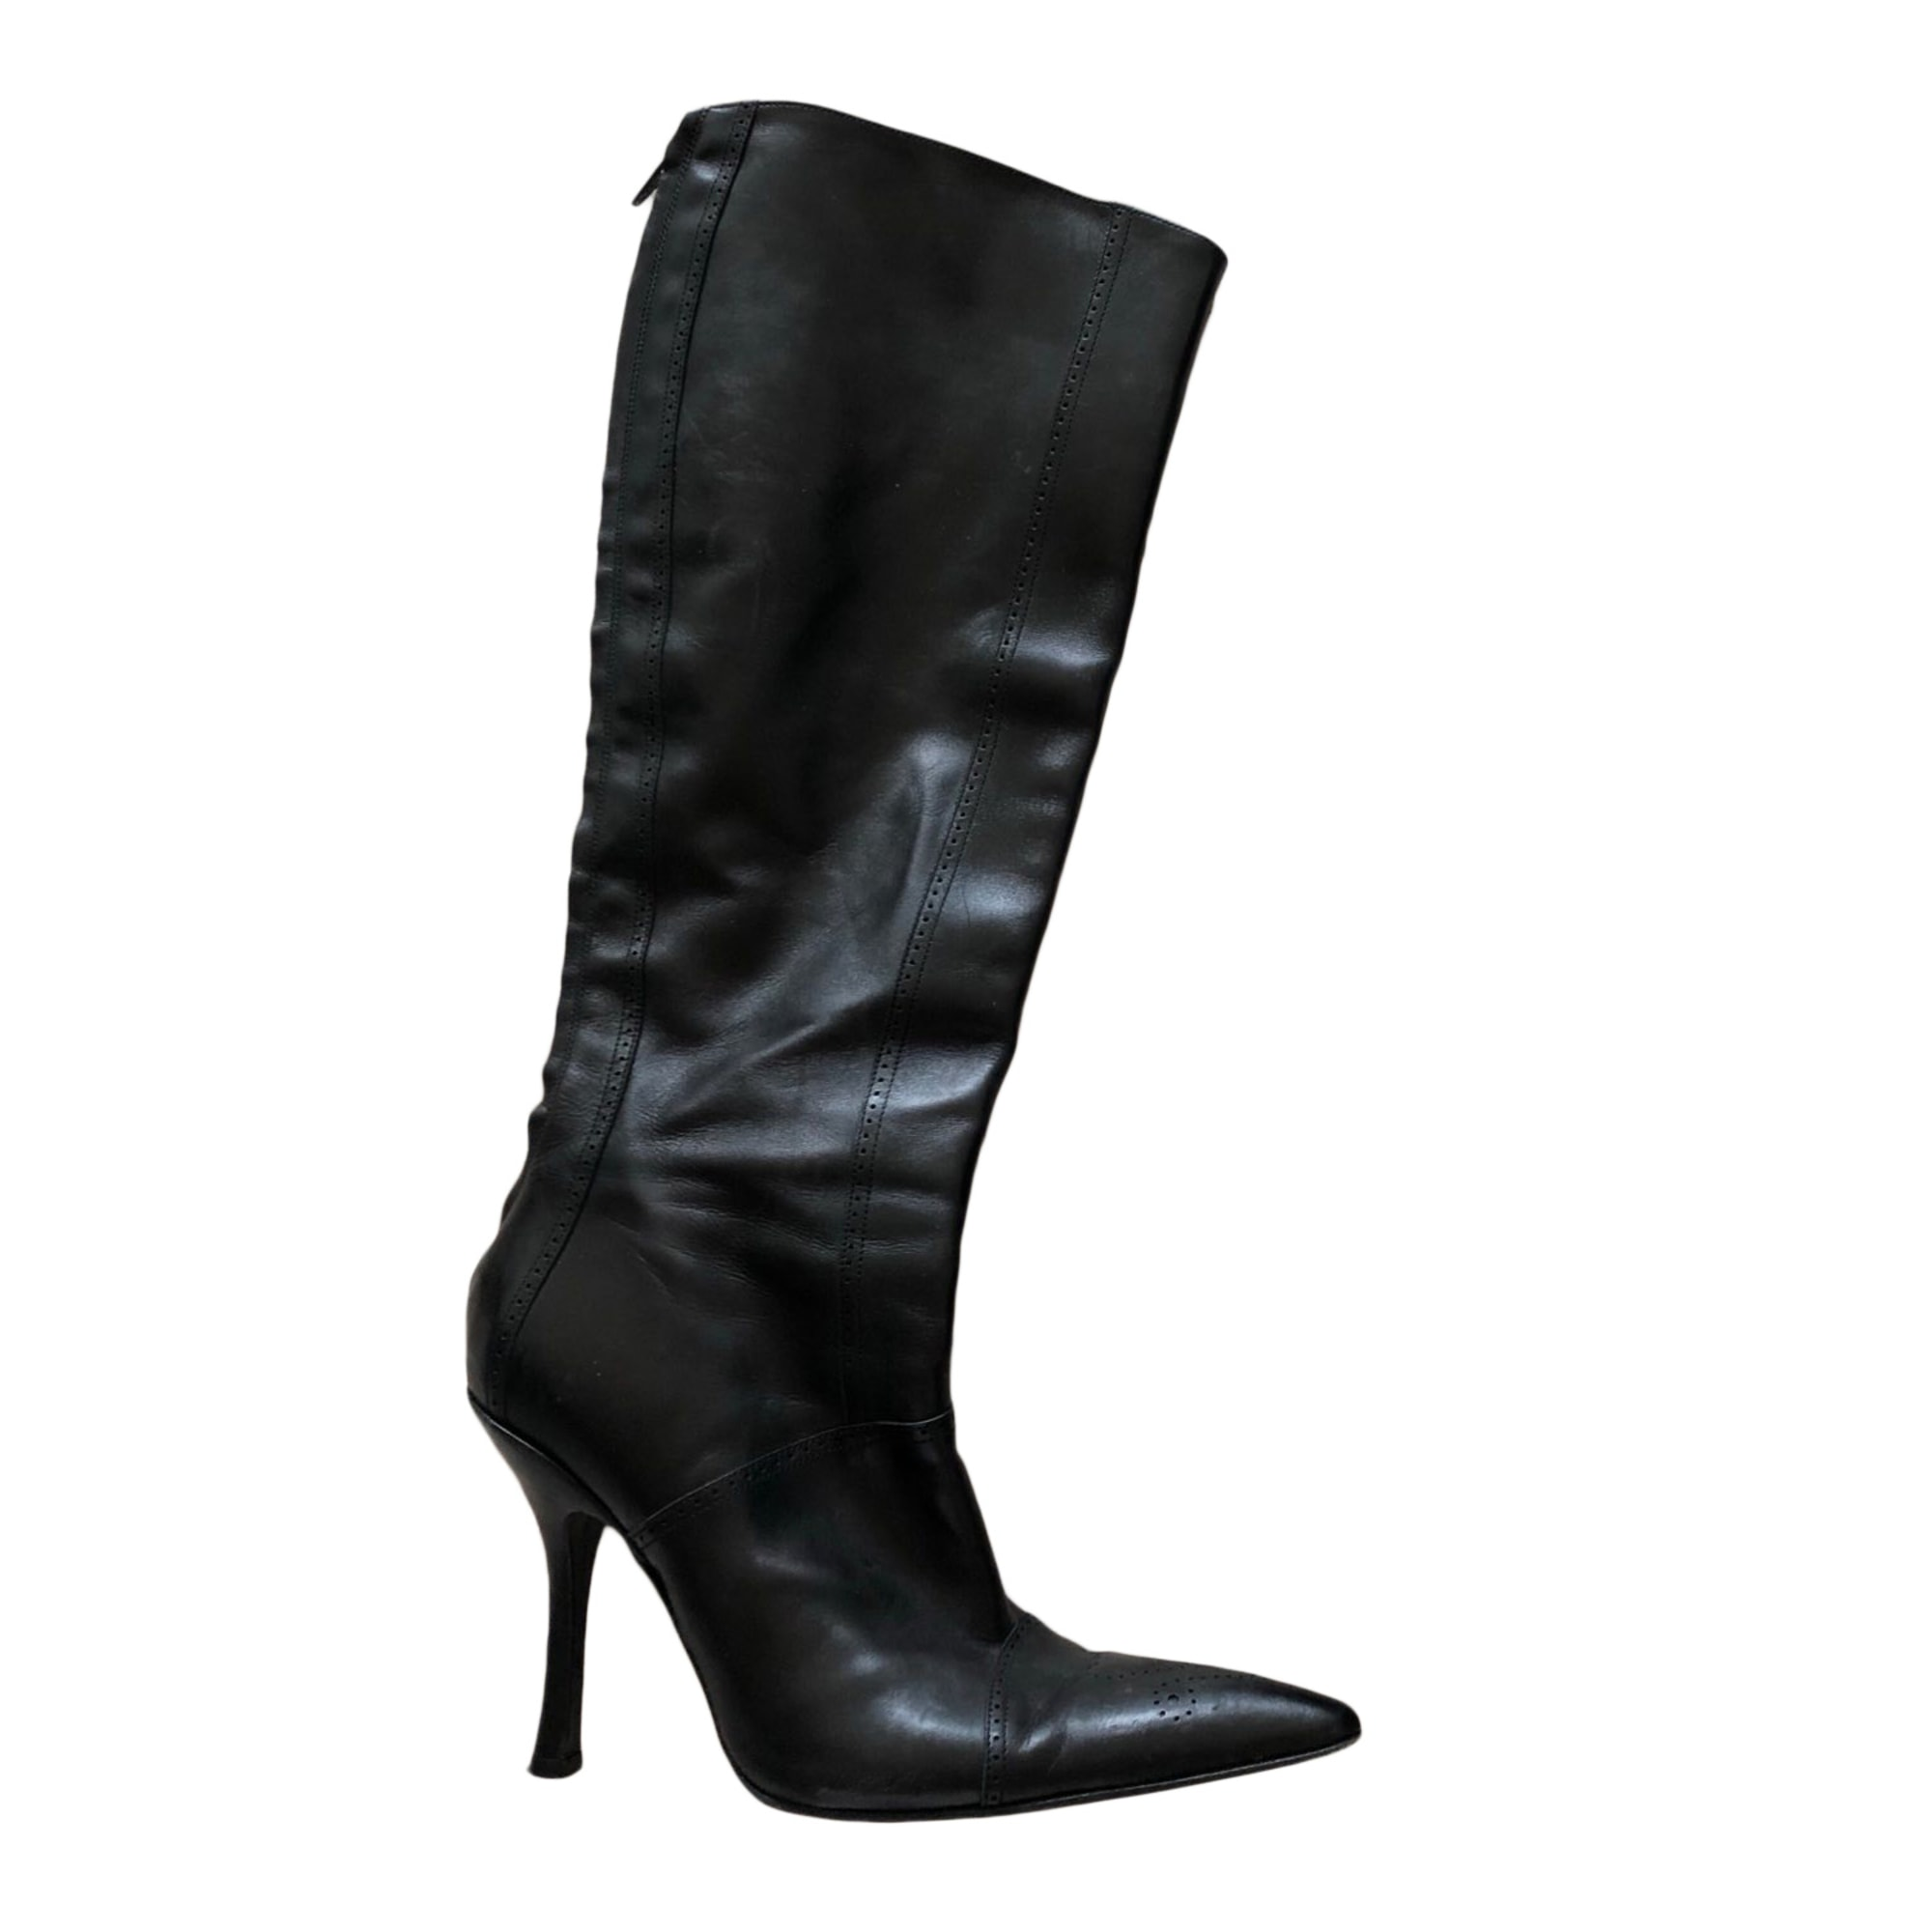 High Heel Boots FREE LANCE Black